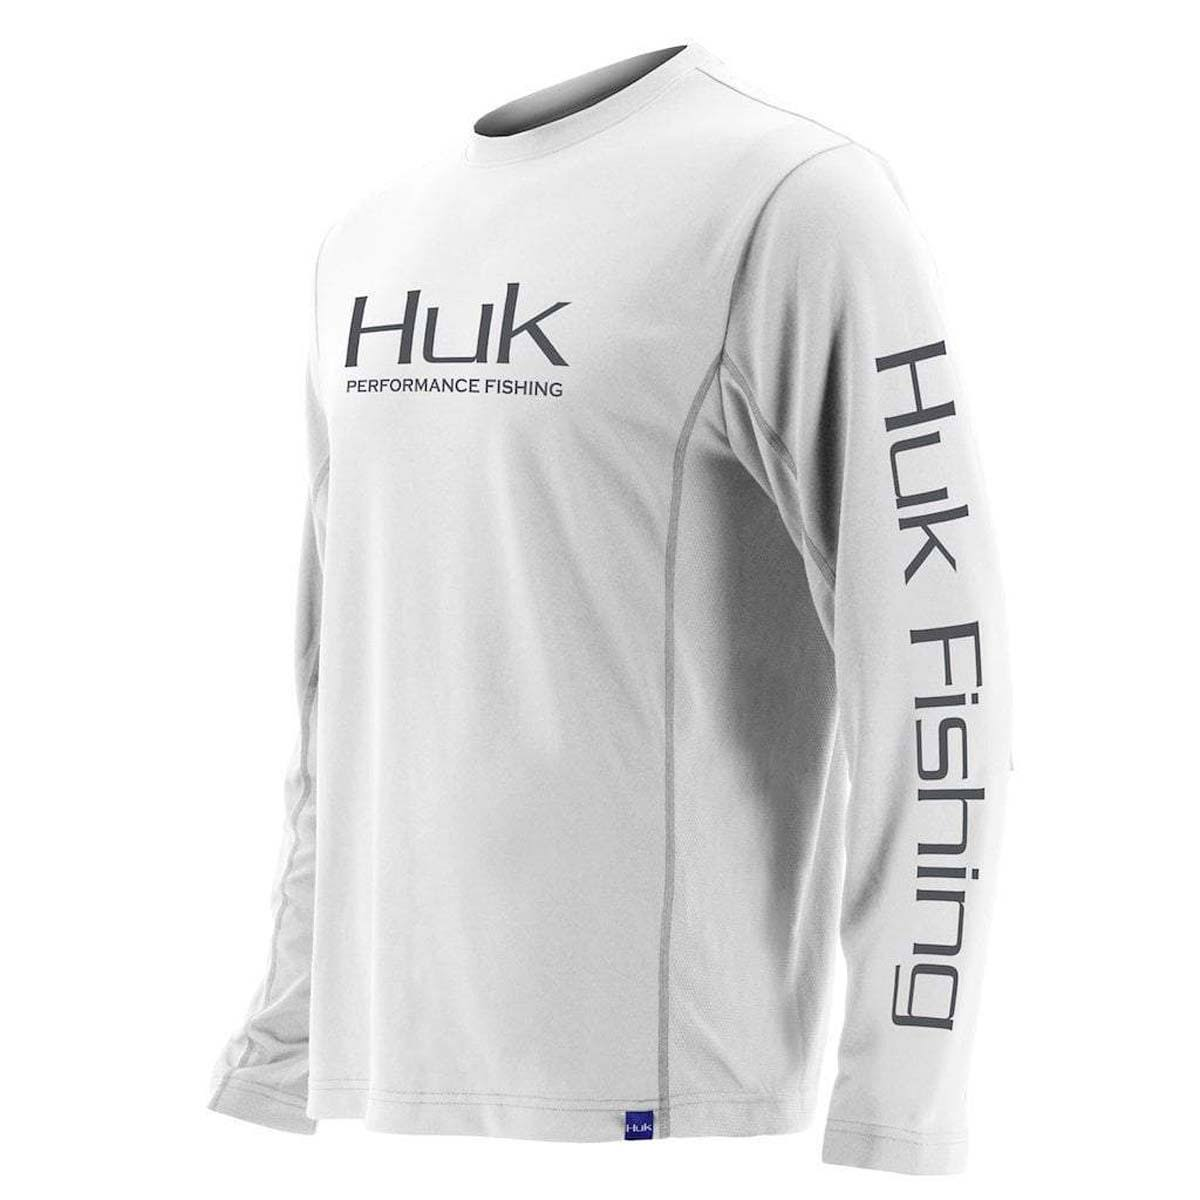 Huk Icon x Long Sleeve Shirt - White - XL